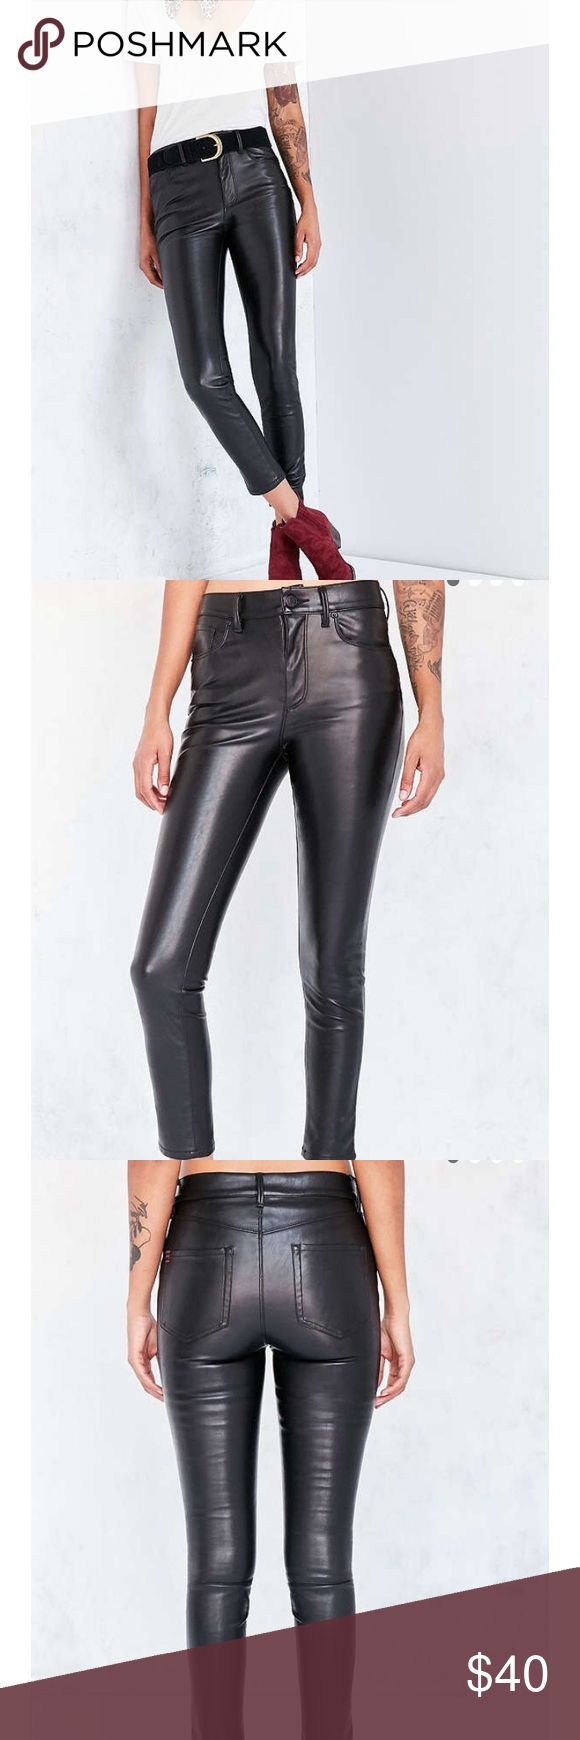 UO Vegan. Black Leather Leggings NWT.  Trendy high ride cropped look. Sold out online.  Offers welcome! Urban Outfitters Pants Leggings